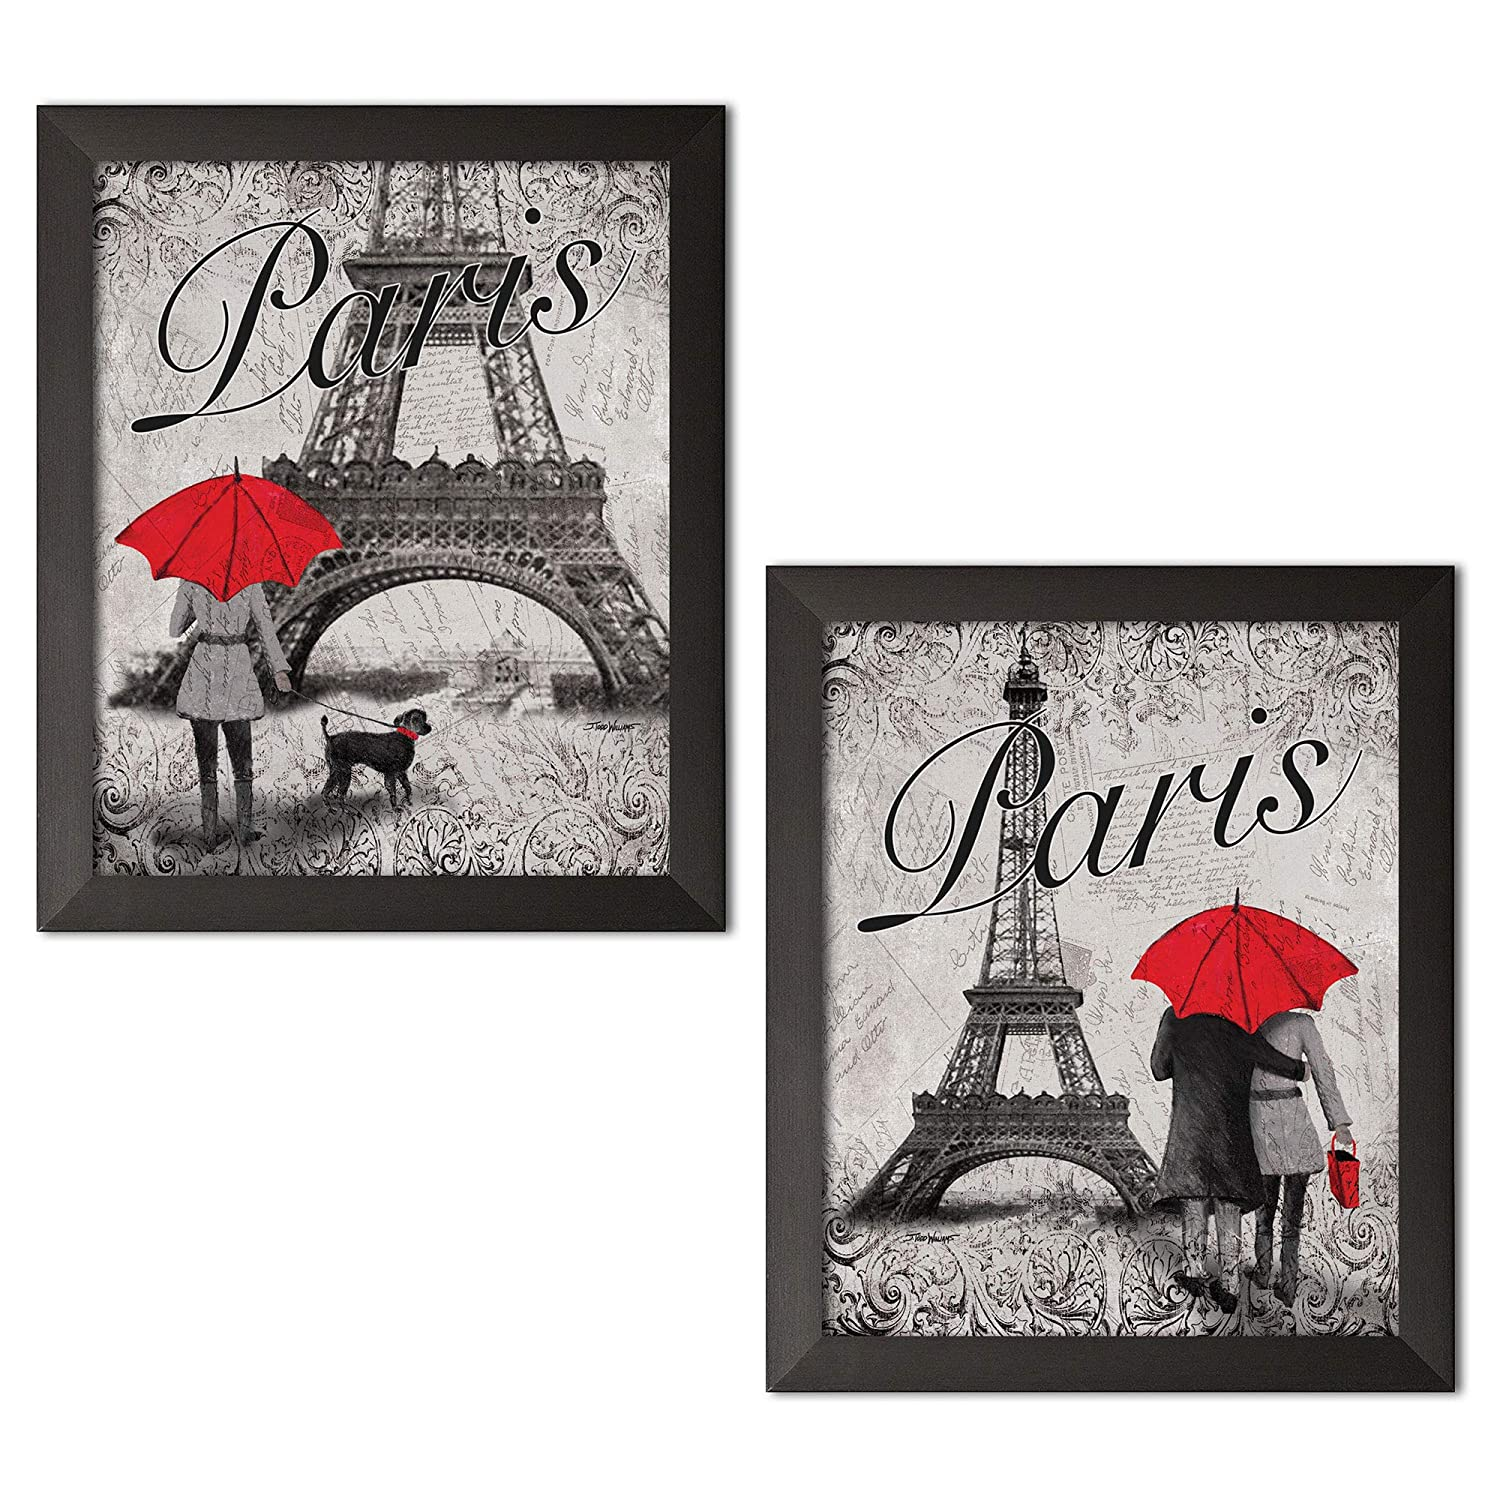 Gango home decor strolling in paris two beautiful 11 x 14 in poster prints eiffel tower and red umbrella set paris décor two 11x14 black framed prints